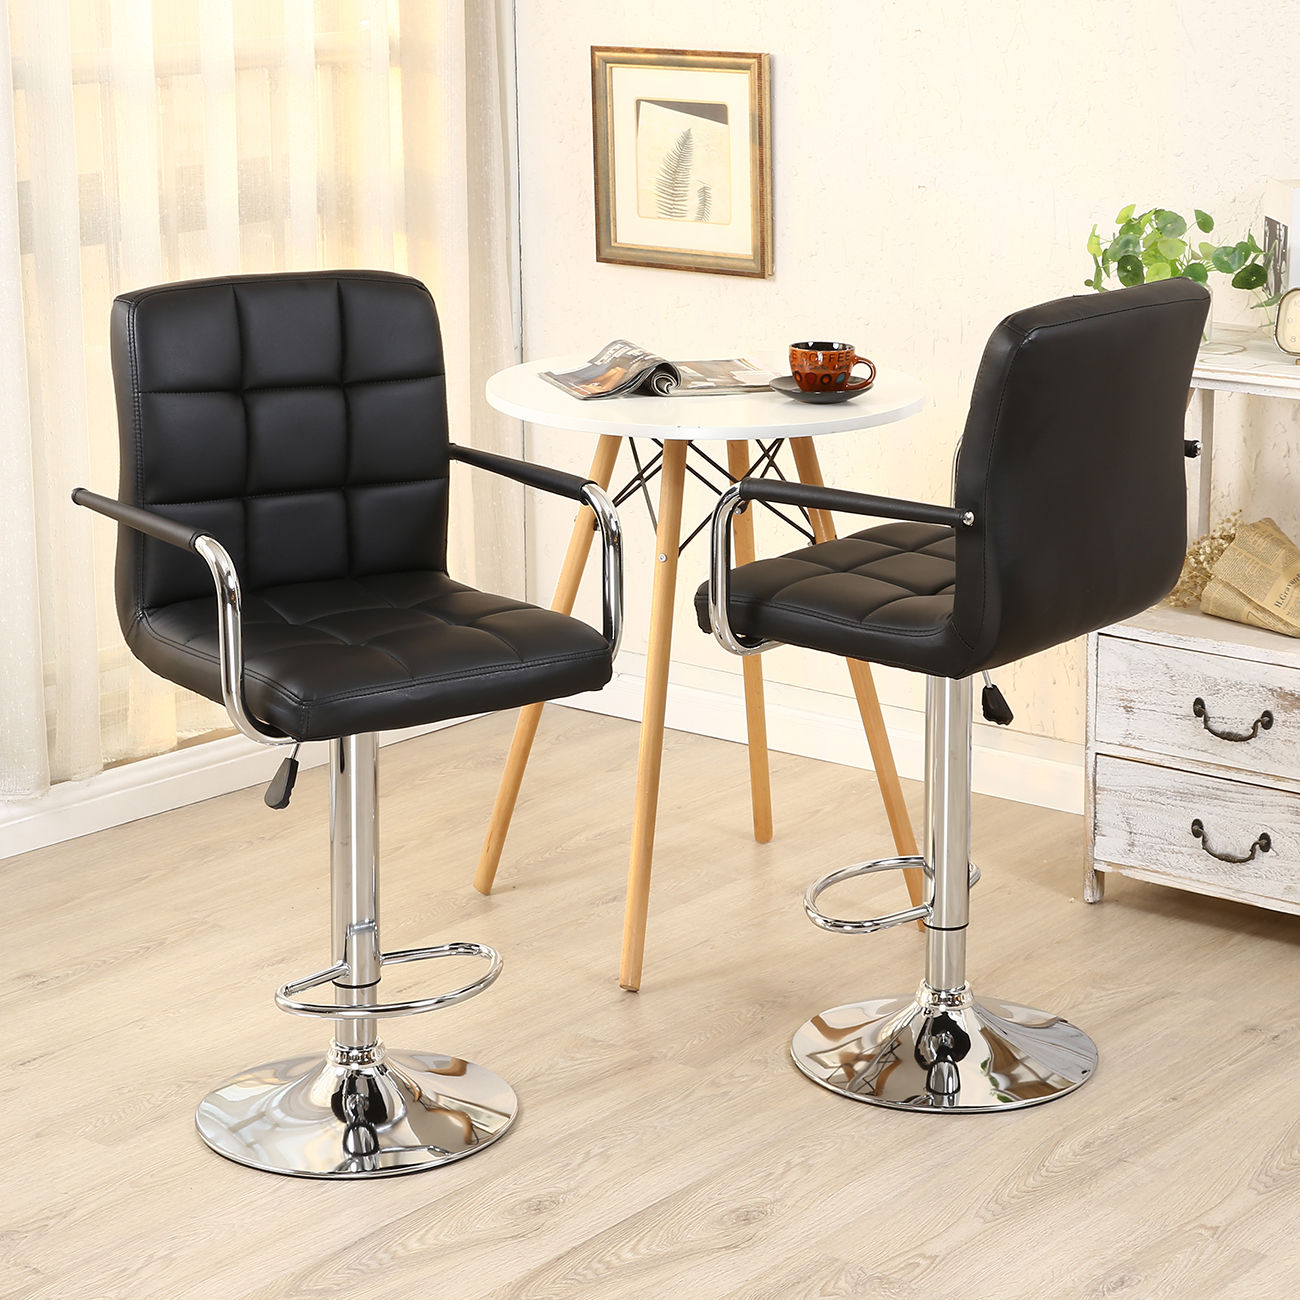 2pcs Pu Leather Adjustable Height Swivel Bar Stool Black